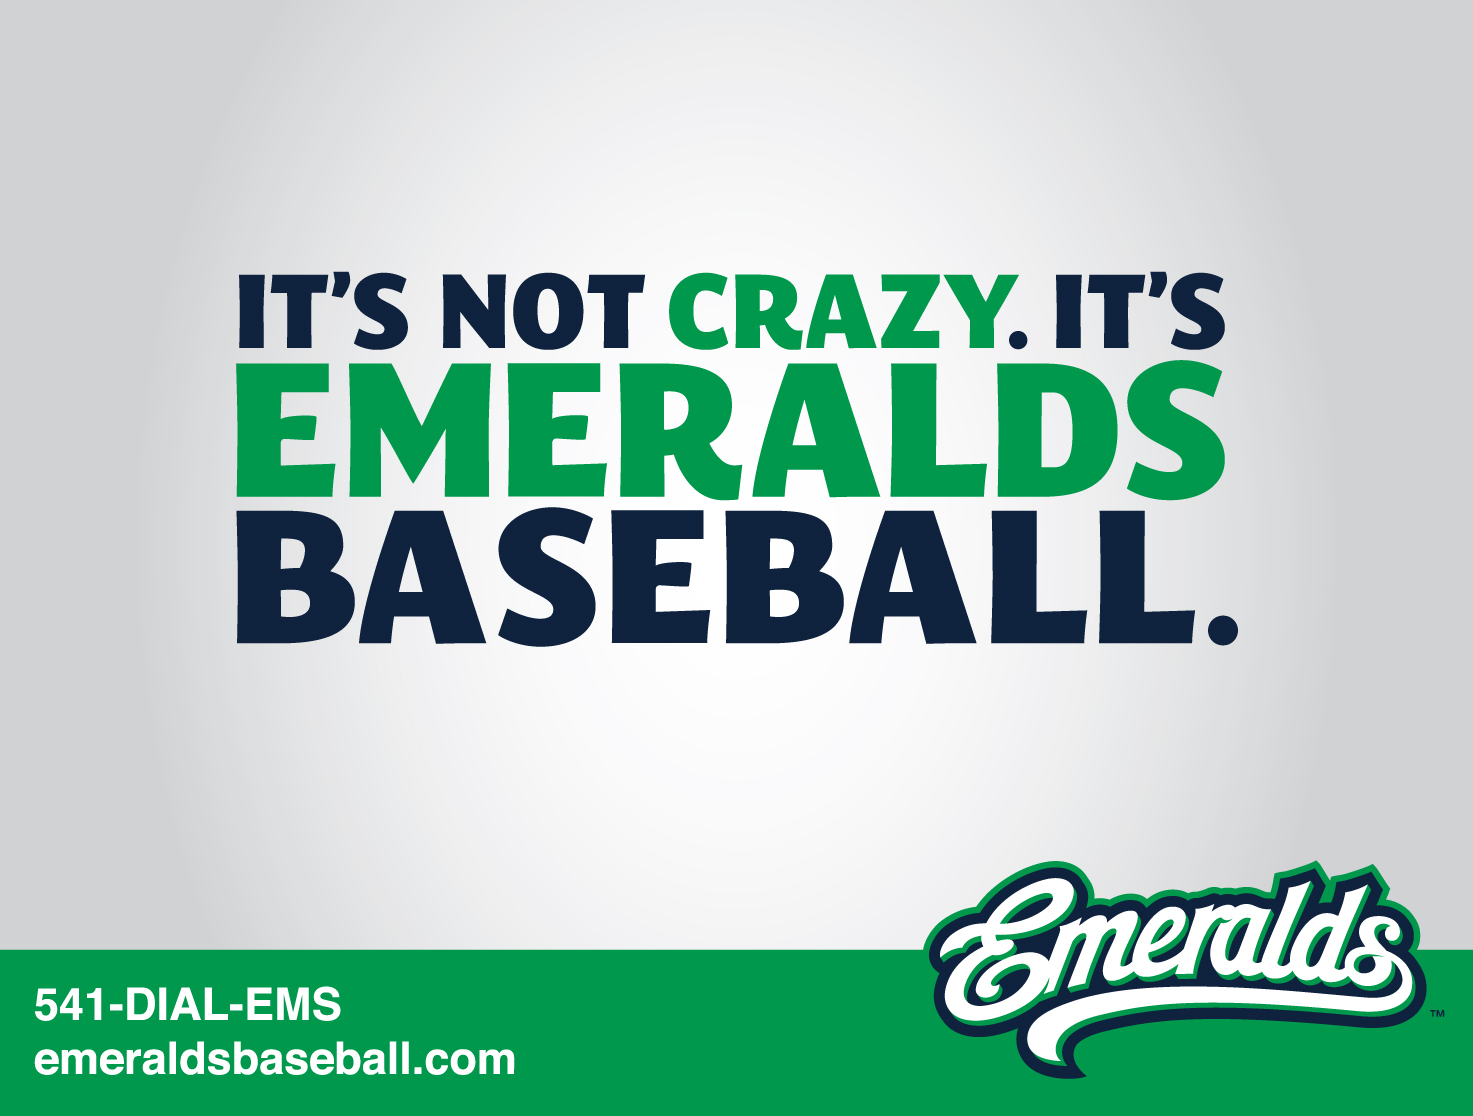 eugene emeralds ad